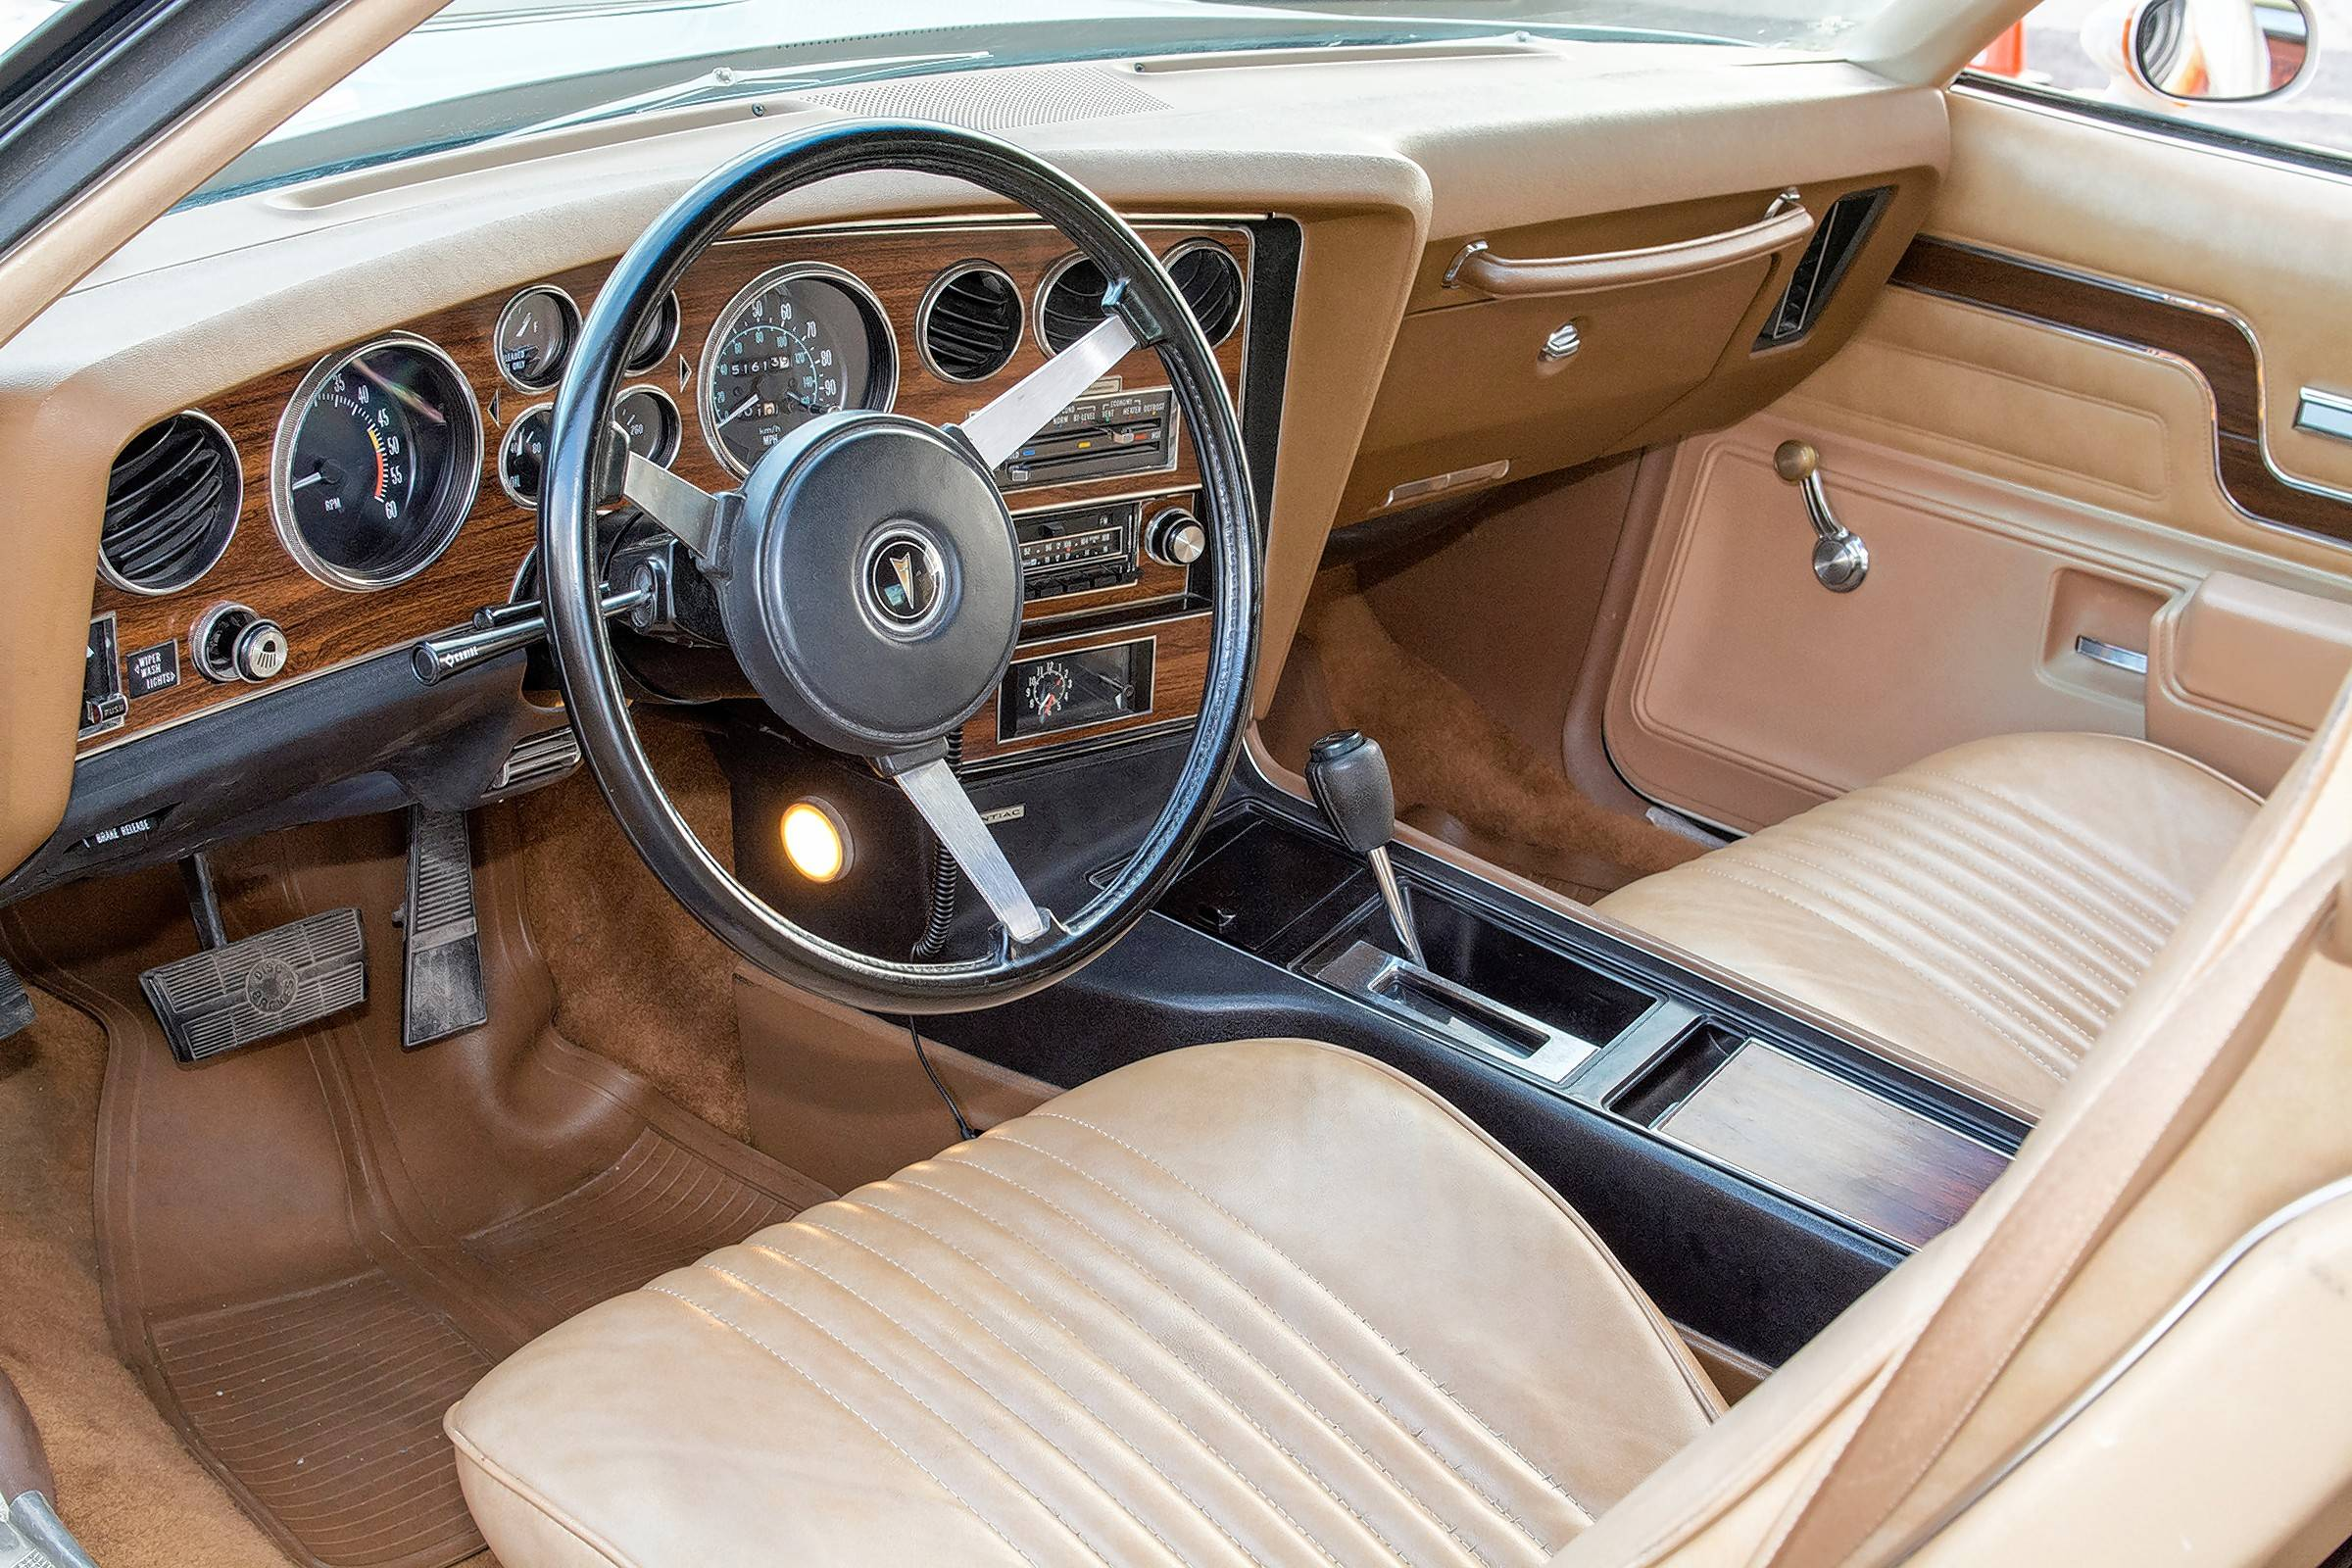 Chuck Wilson ordered the tan interior while Nick Chelf's Can Am has black seats and dashboard.